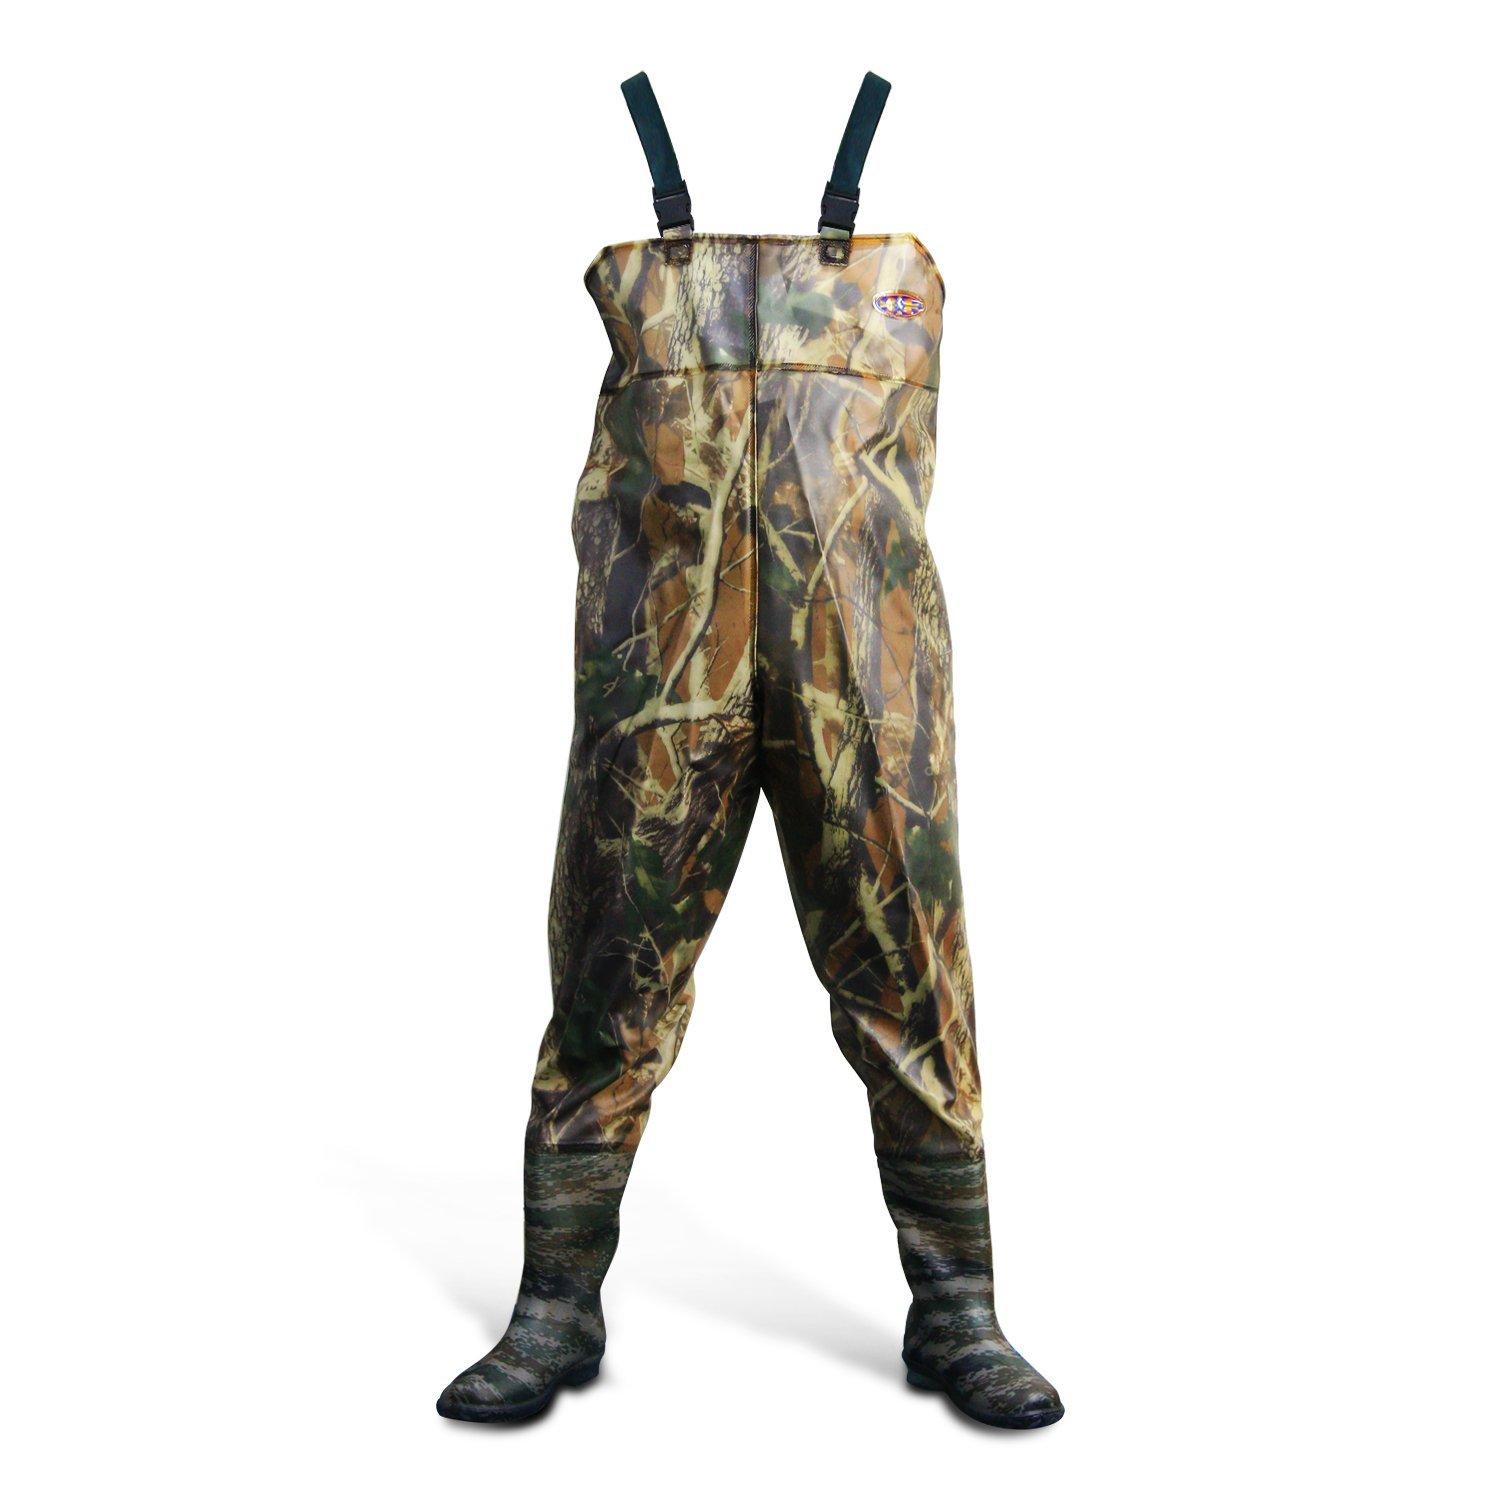 b5aed561544 Get Quotations · Fly fishing waders with wading boots